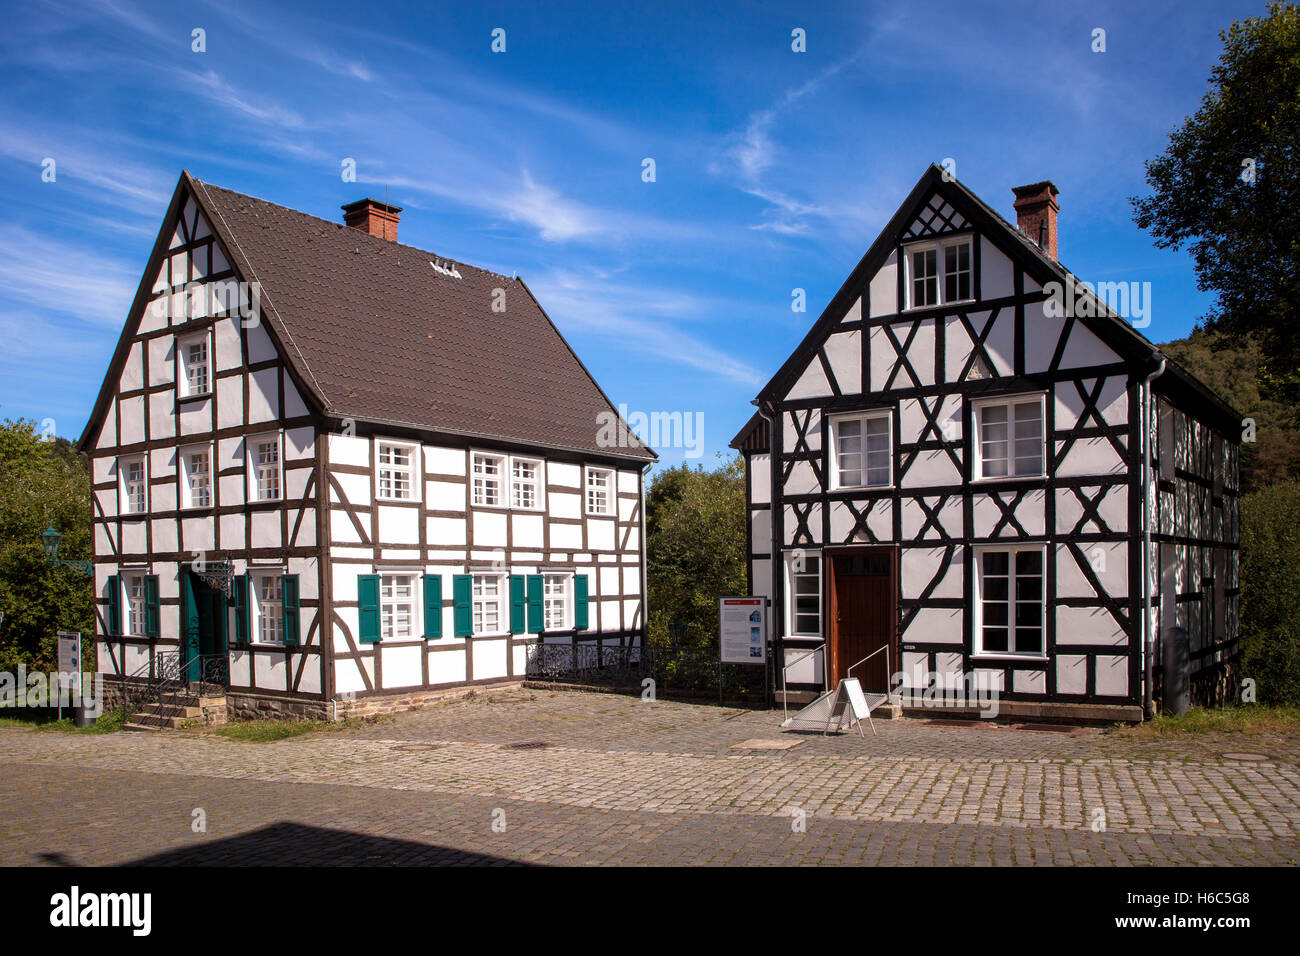 Germany, North Rhine-Westphalia, Hagen, Hagen Open-air Museum, half-timbered houses. Stock Photo